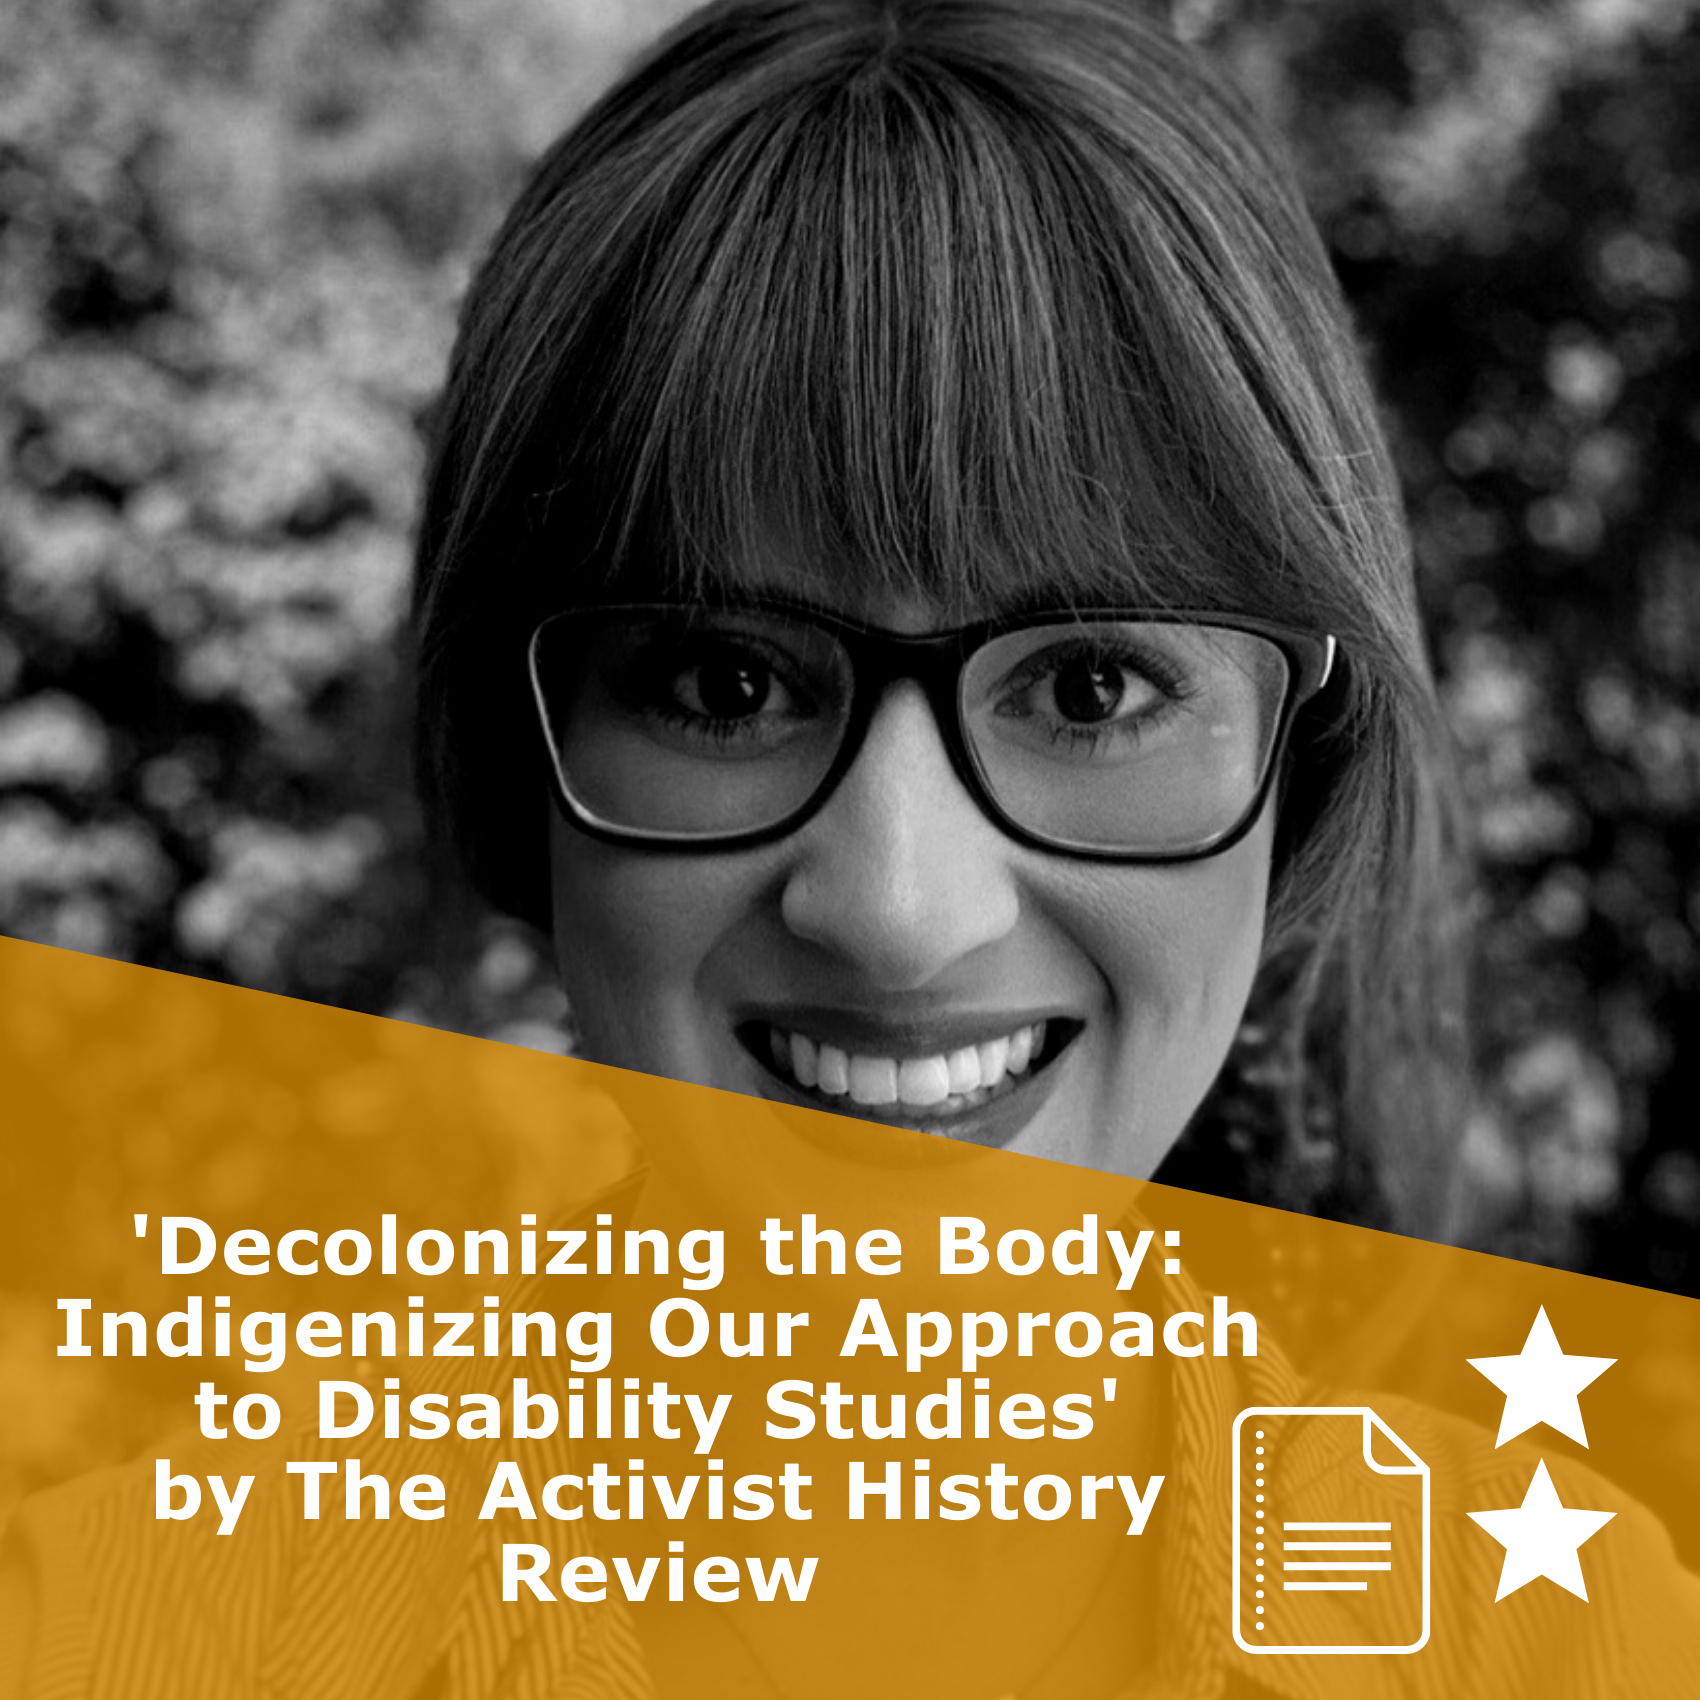 Title 'Decolonizing the Body: Indigenizing Our Approach to Disability Studies by The Activist History Review'. It is an article rated 2 stars.